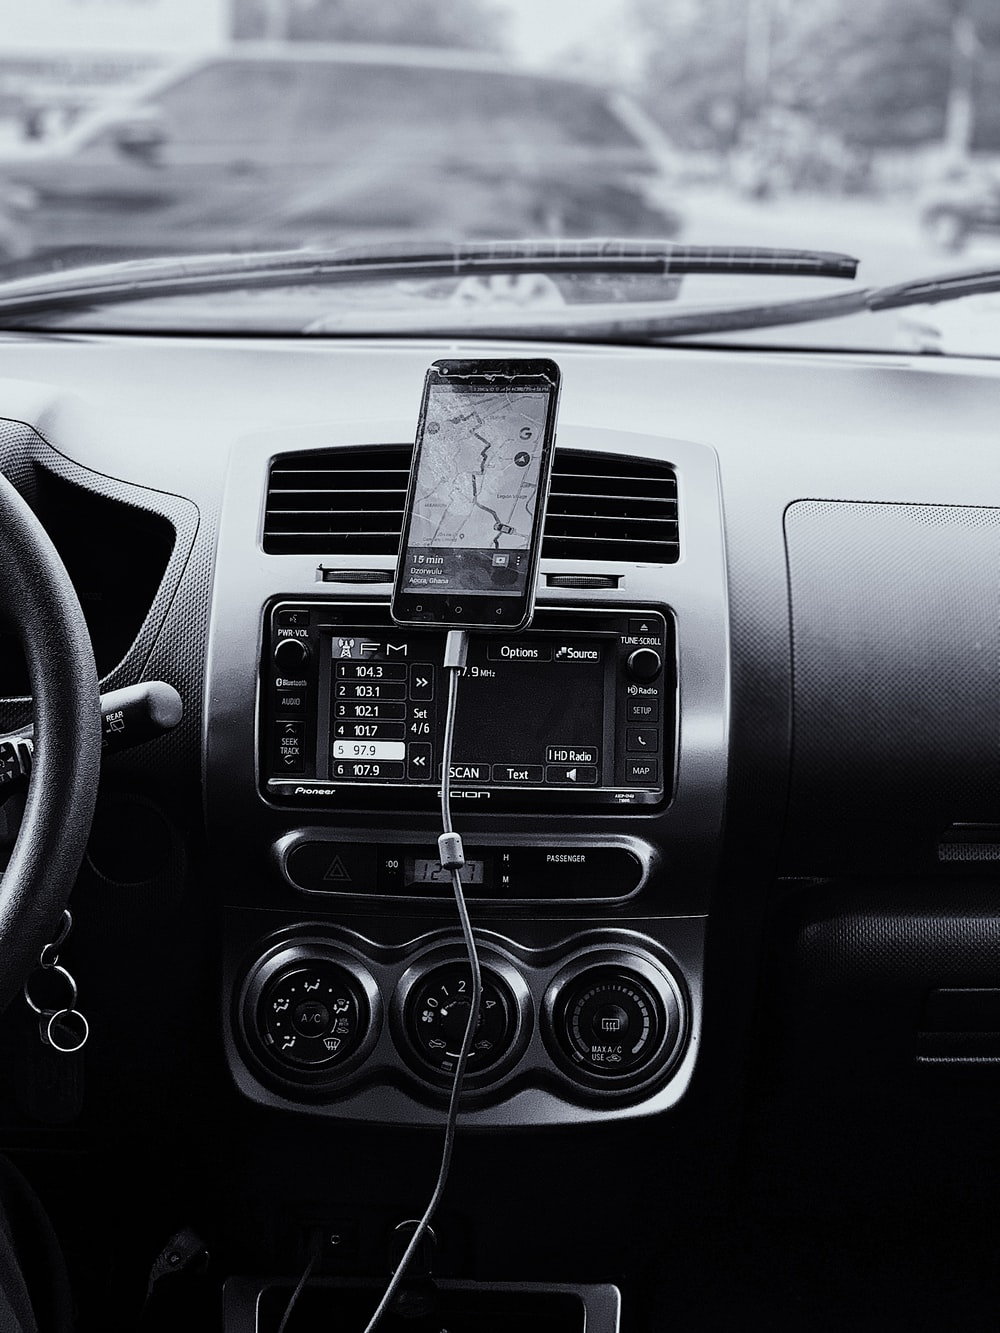 black car stereo turned on in grayscale photography